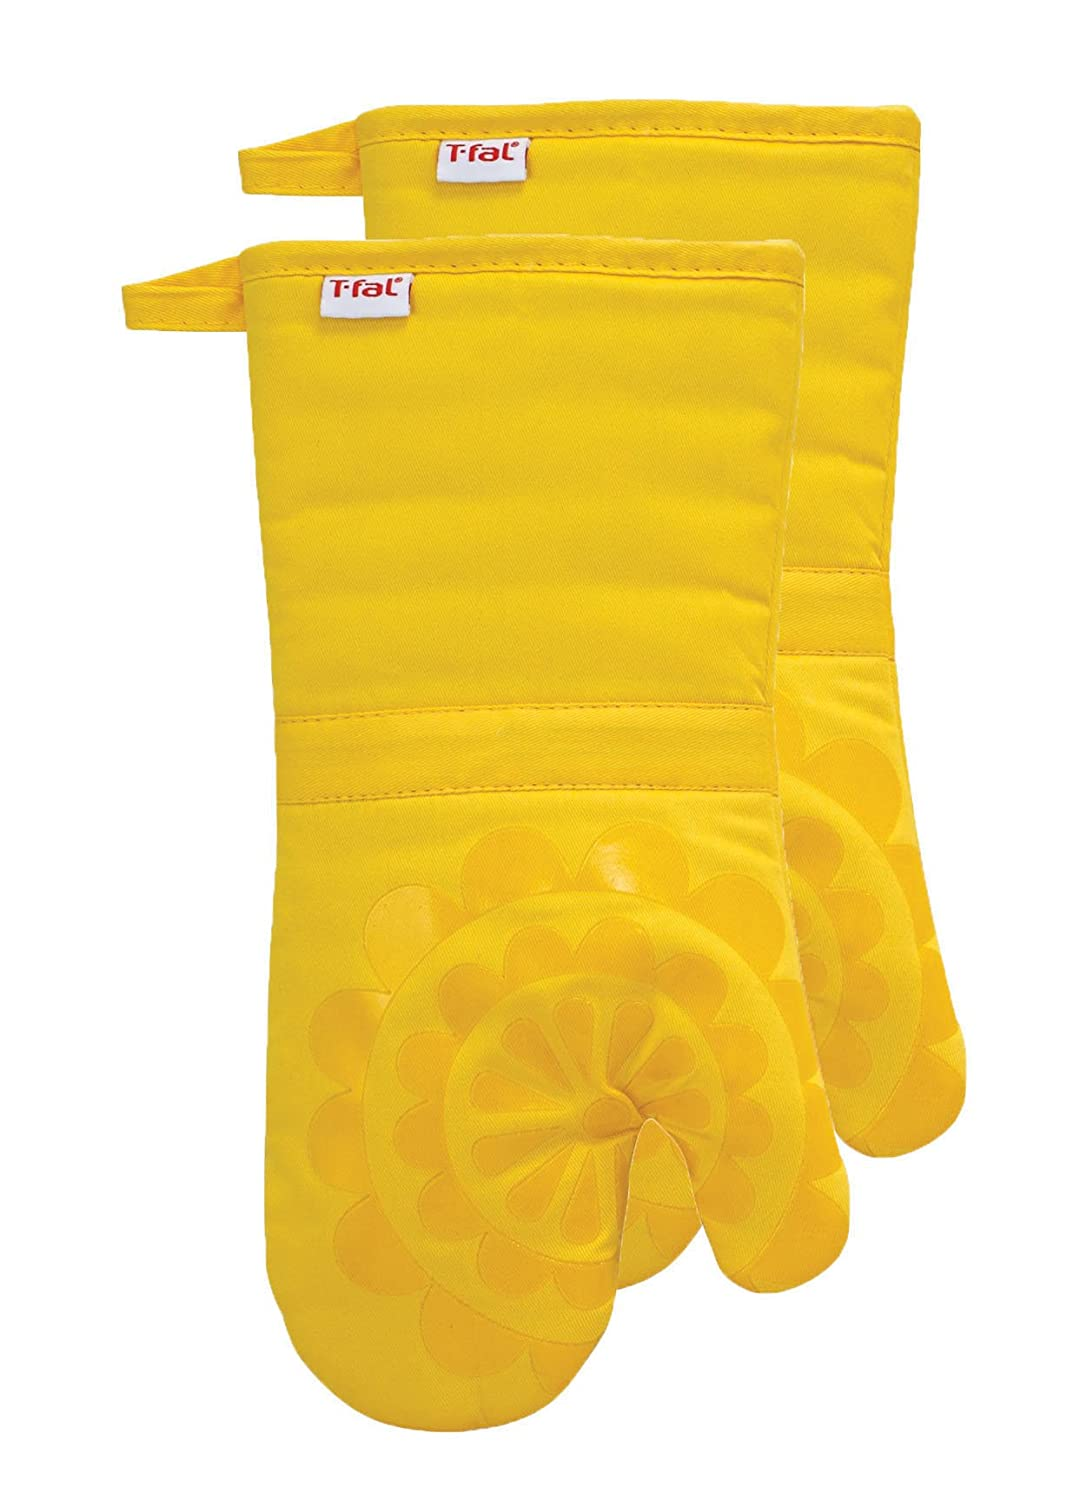 T-fal Textiles Silicone Printed Medallion 100% Cotton Twill Heat Resistent Non-Slip Grip Oven Mitt, 12.75 inches x 7 inches, Set of 2, Lemon Yellow